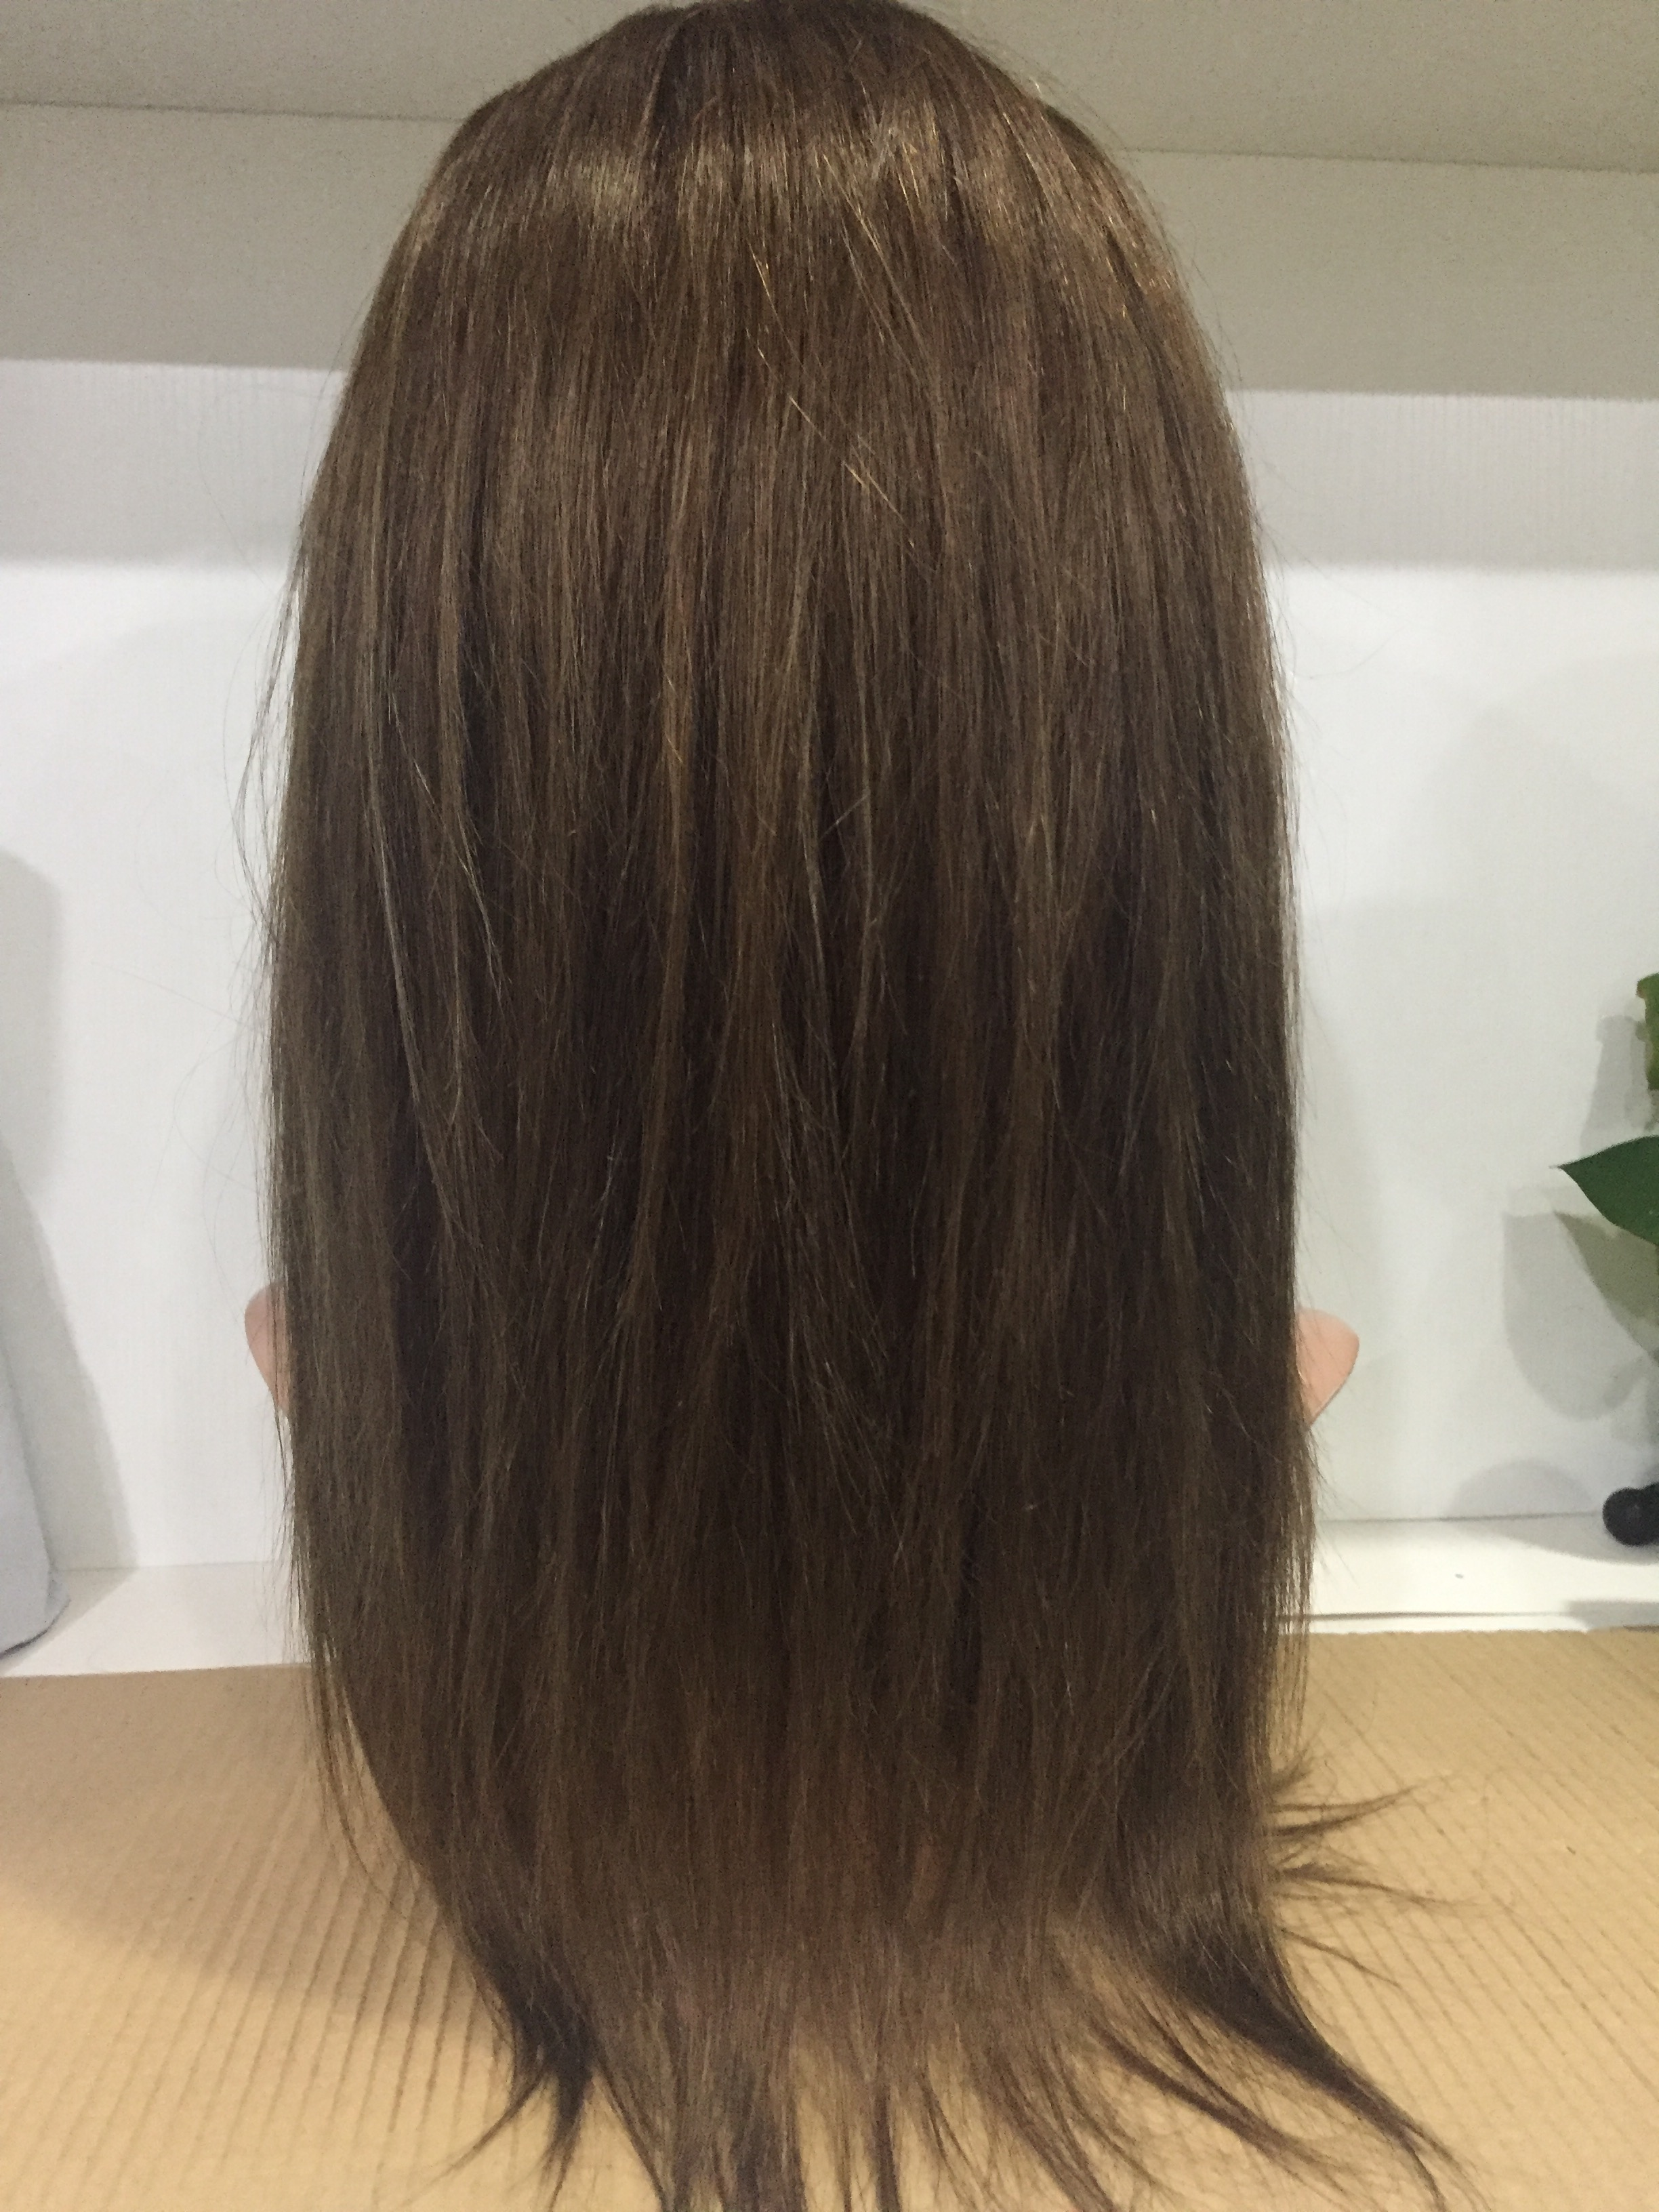 Brown hair wigs colored hair wholesale wigs in stock  Brazilian hair YL220